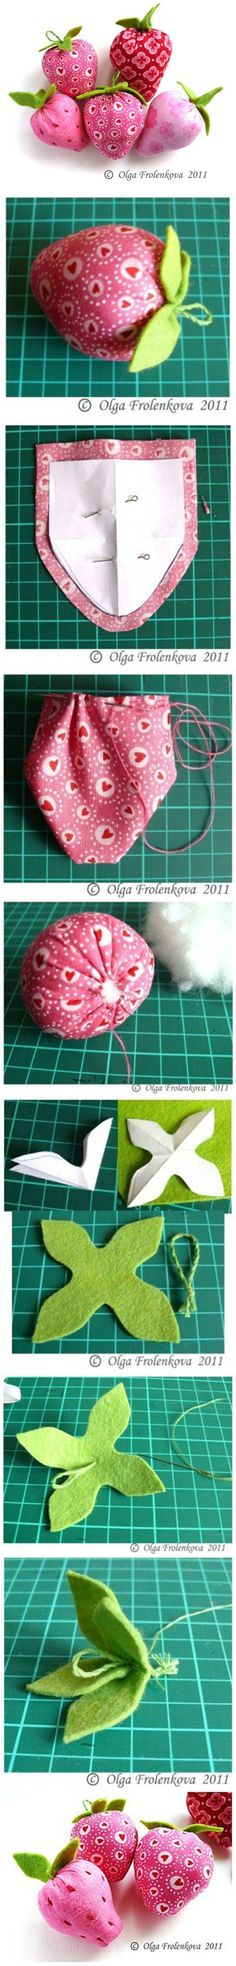 DIY Sew Fabric Strawberry DIY Sew Fabric Strawberry